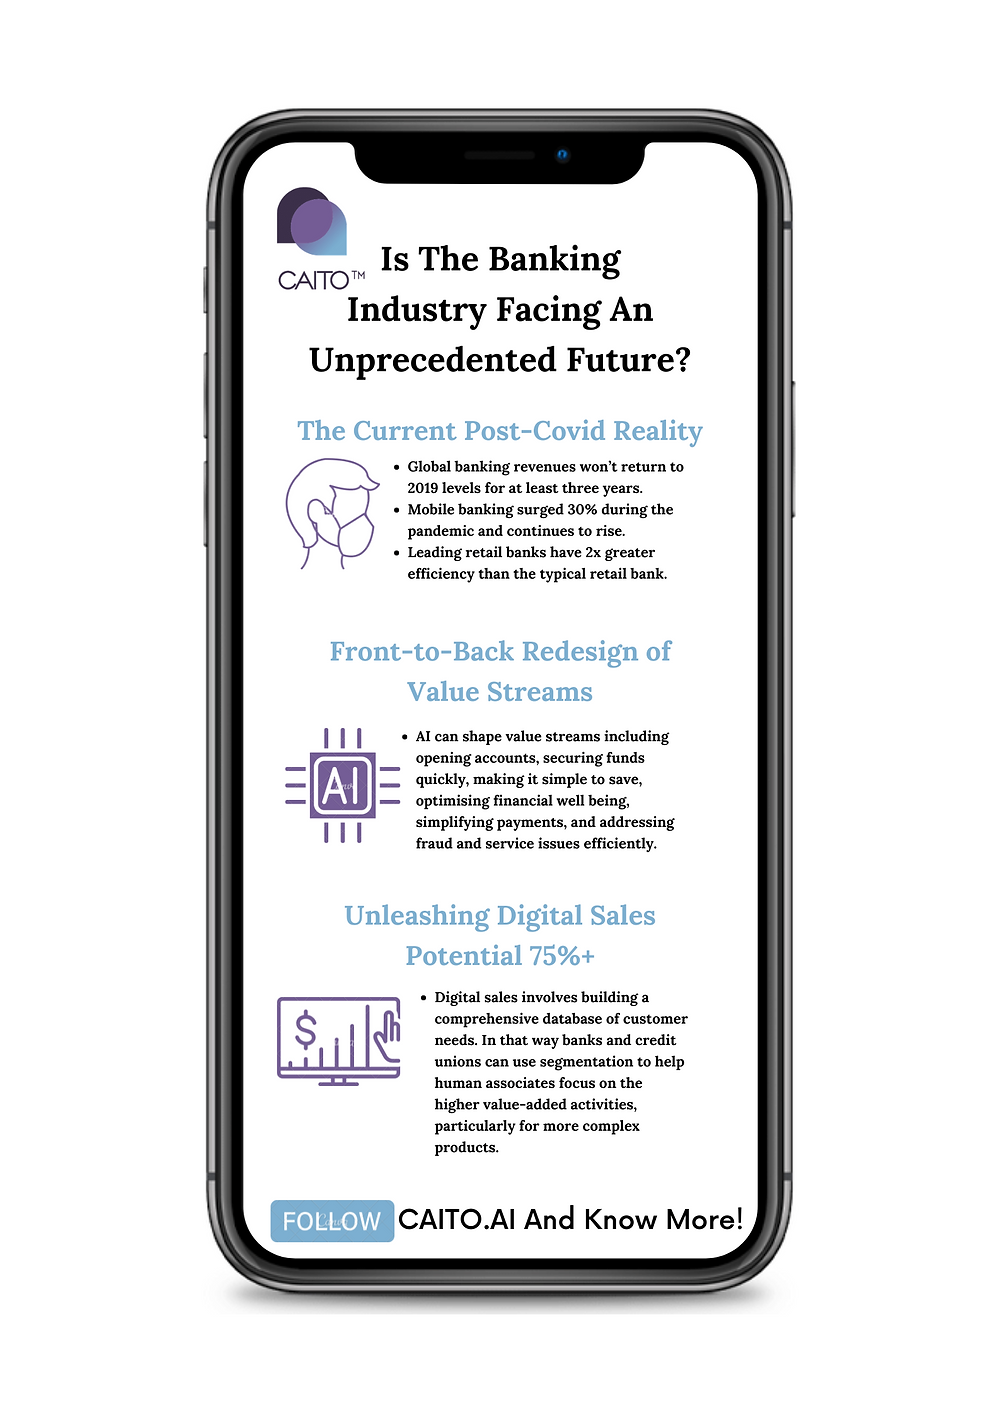 In the digital age, front-runner #Banks and #FinancialServicescompanies are reimagining processes to discover their full potential.  CAITO's #AI Solutions can support organisations in redesign of value streams, saving time, deploying tasks #automation and having human associates focus on the higher value-added activities.